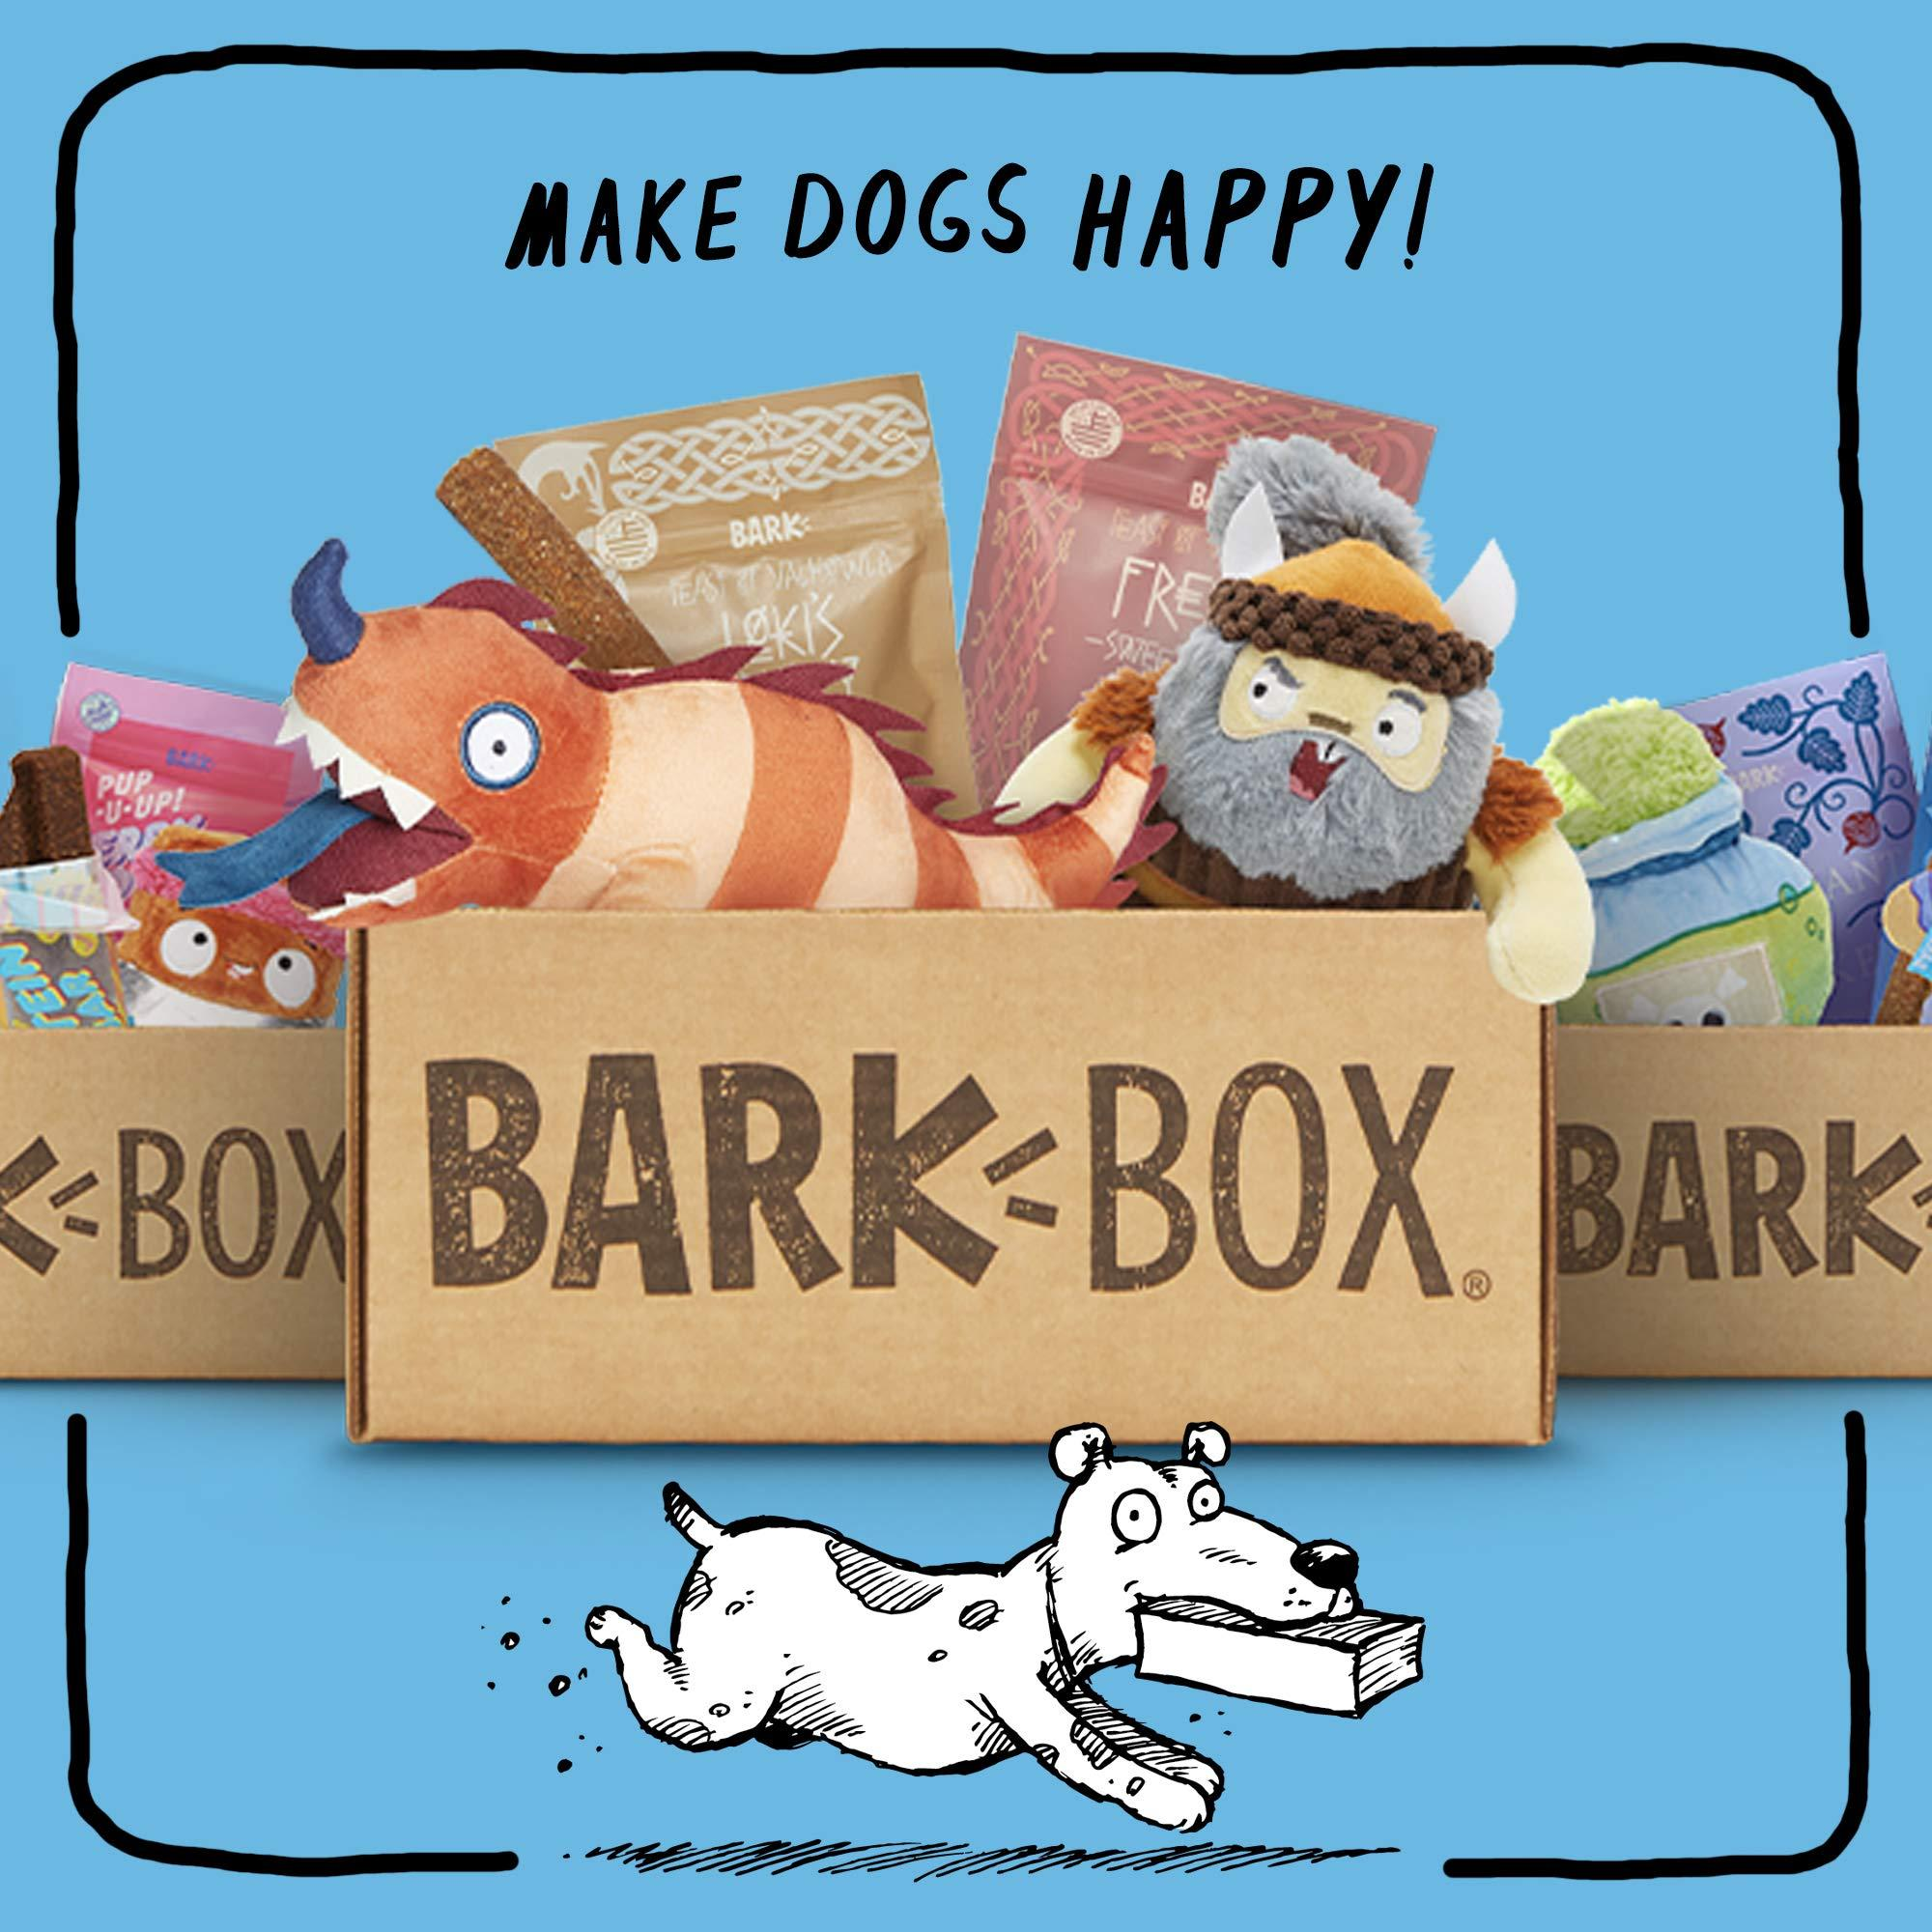 BarkBox Monthly Subscription Box | Dog Chew Toys, All Natural Dog Treats, Dental Chews, Dog Supplies Themed Monthly Box | Medium Dog (20-50lb)